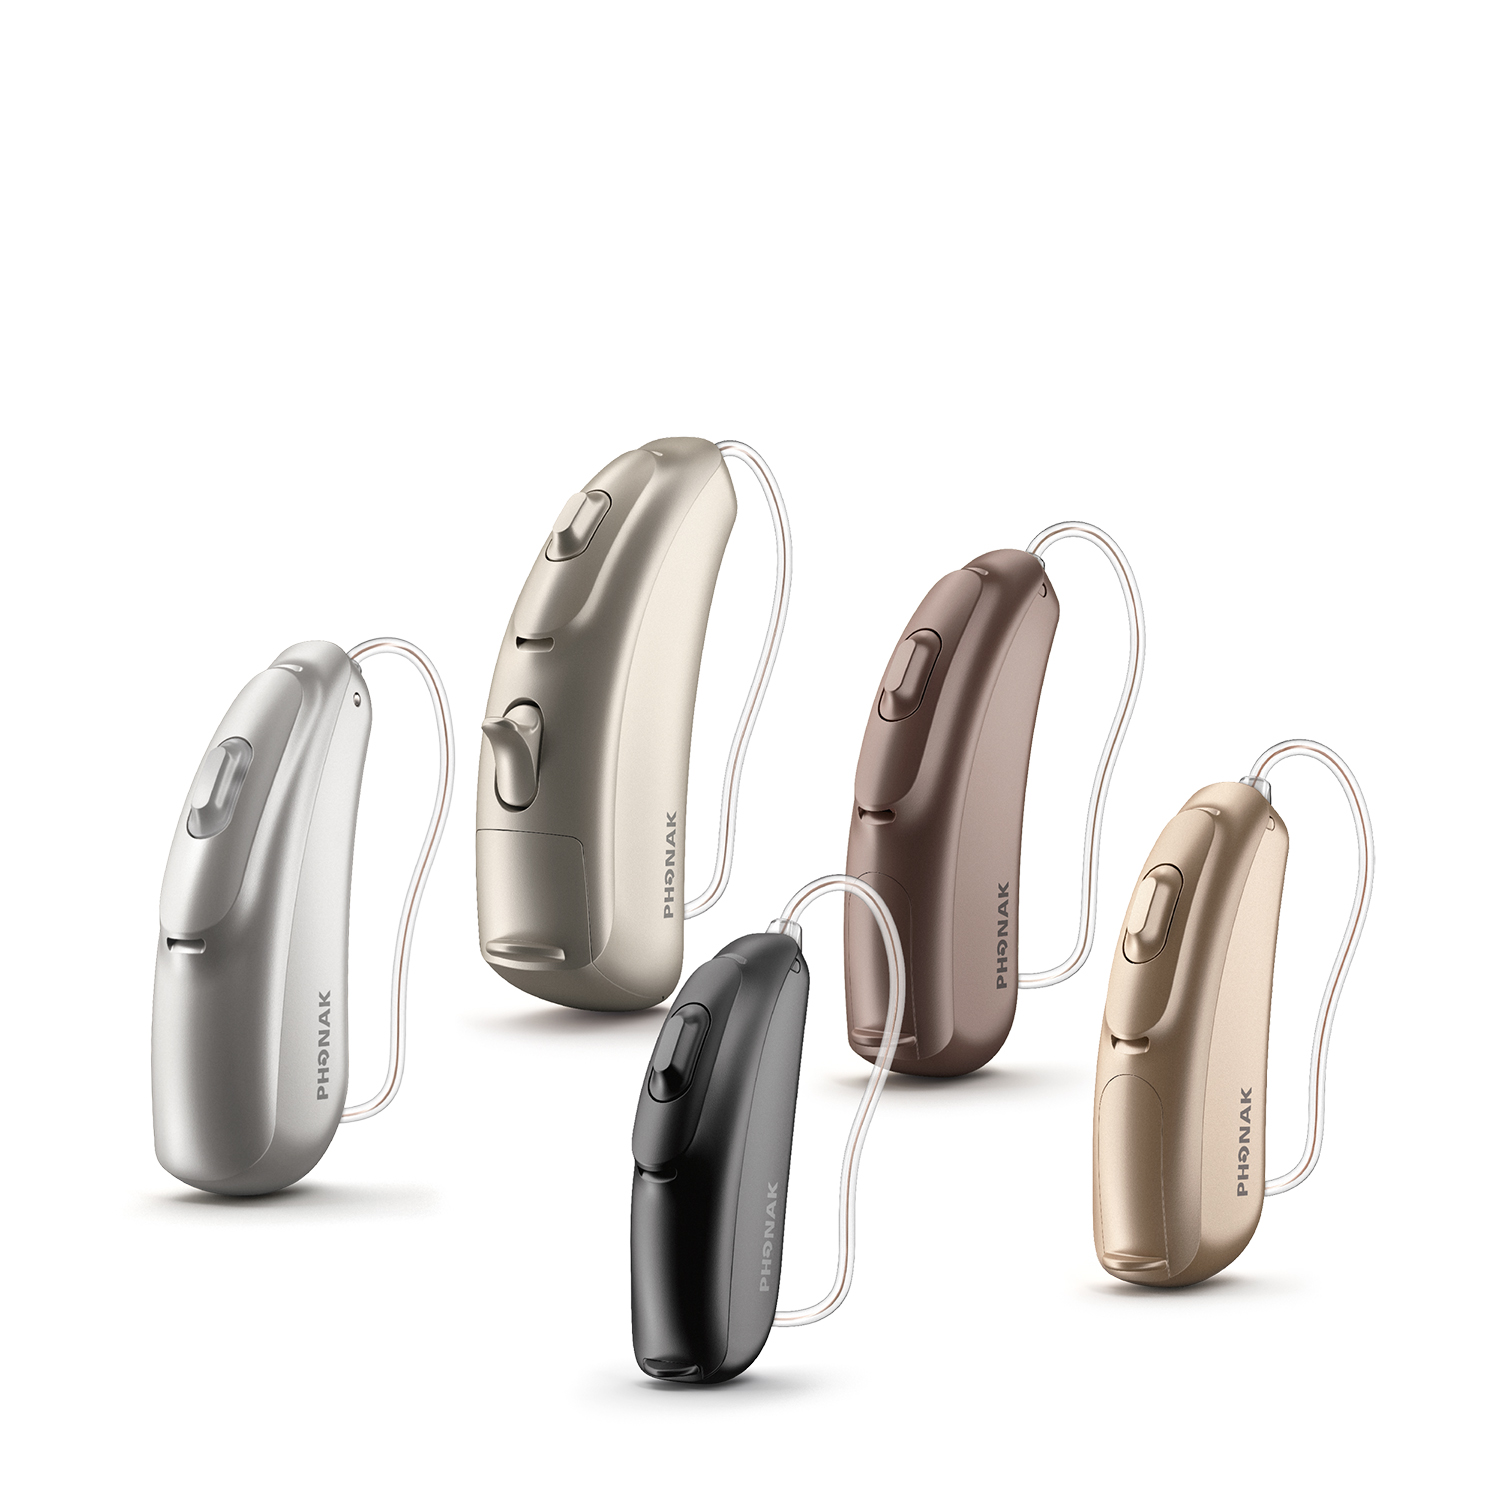 The Phonak Audeo Marvel Hearing Aid